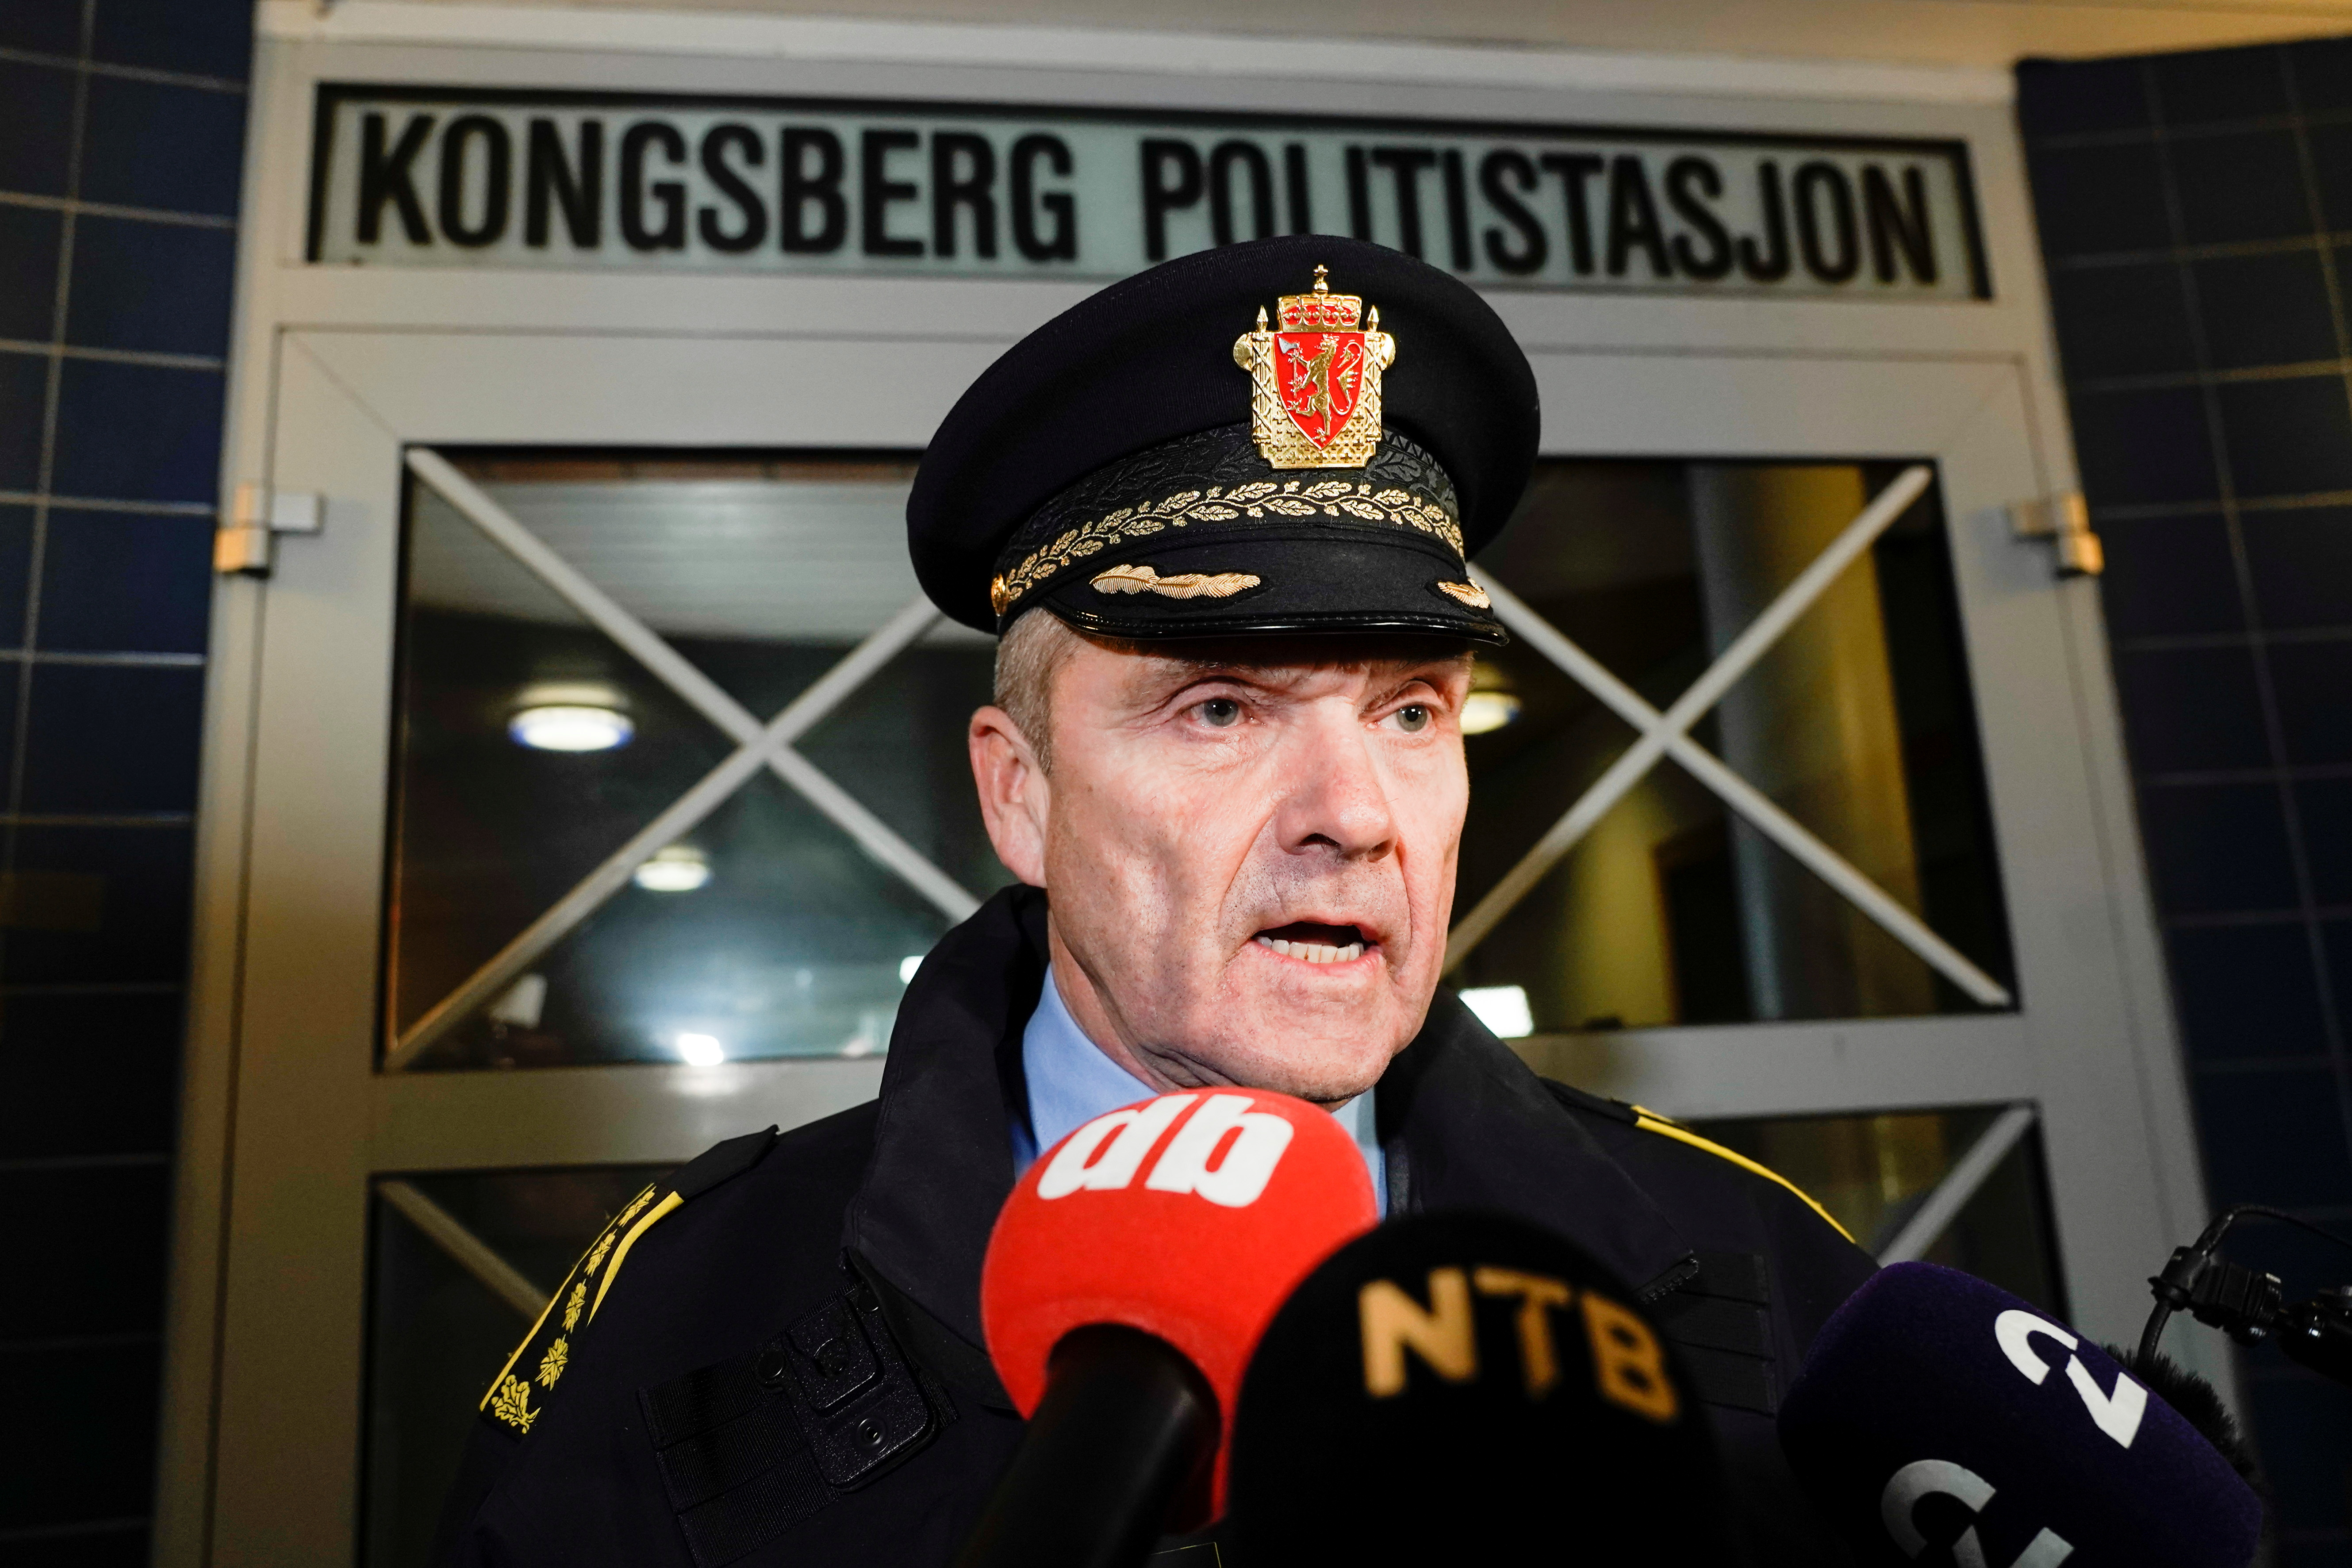 Police chief Oeyvind Aas speaks to the media after several people were killed and others were injured by a man using a bow and arrows to carry out attacks, in Kongsberg, Norway, October 13, 2021. Terje Pedersen/NTB/via REUTERS.